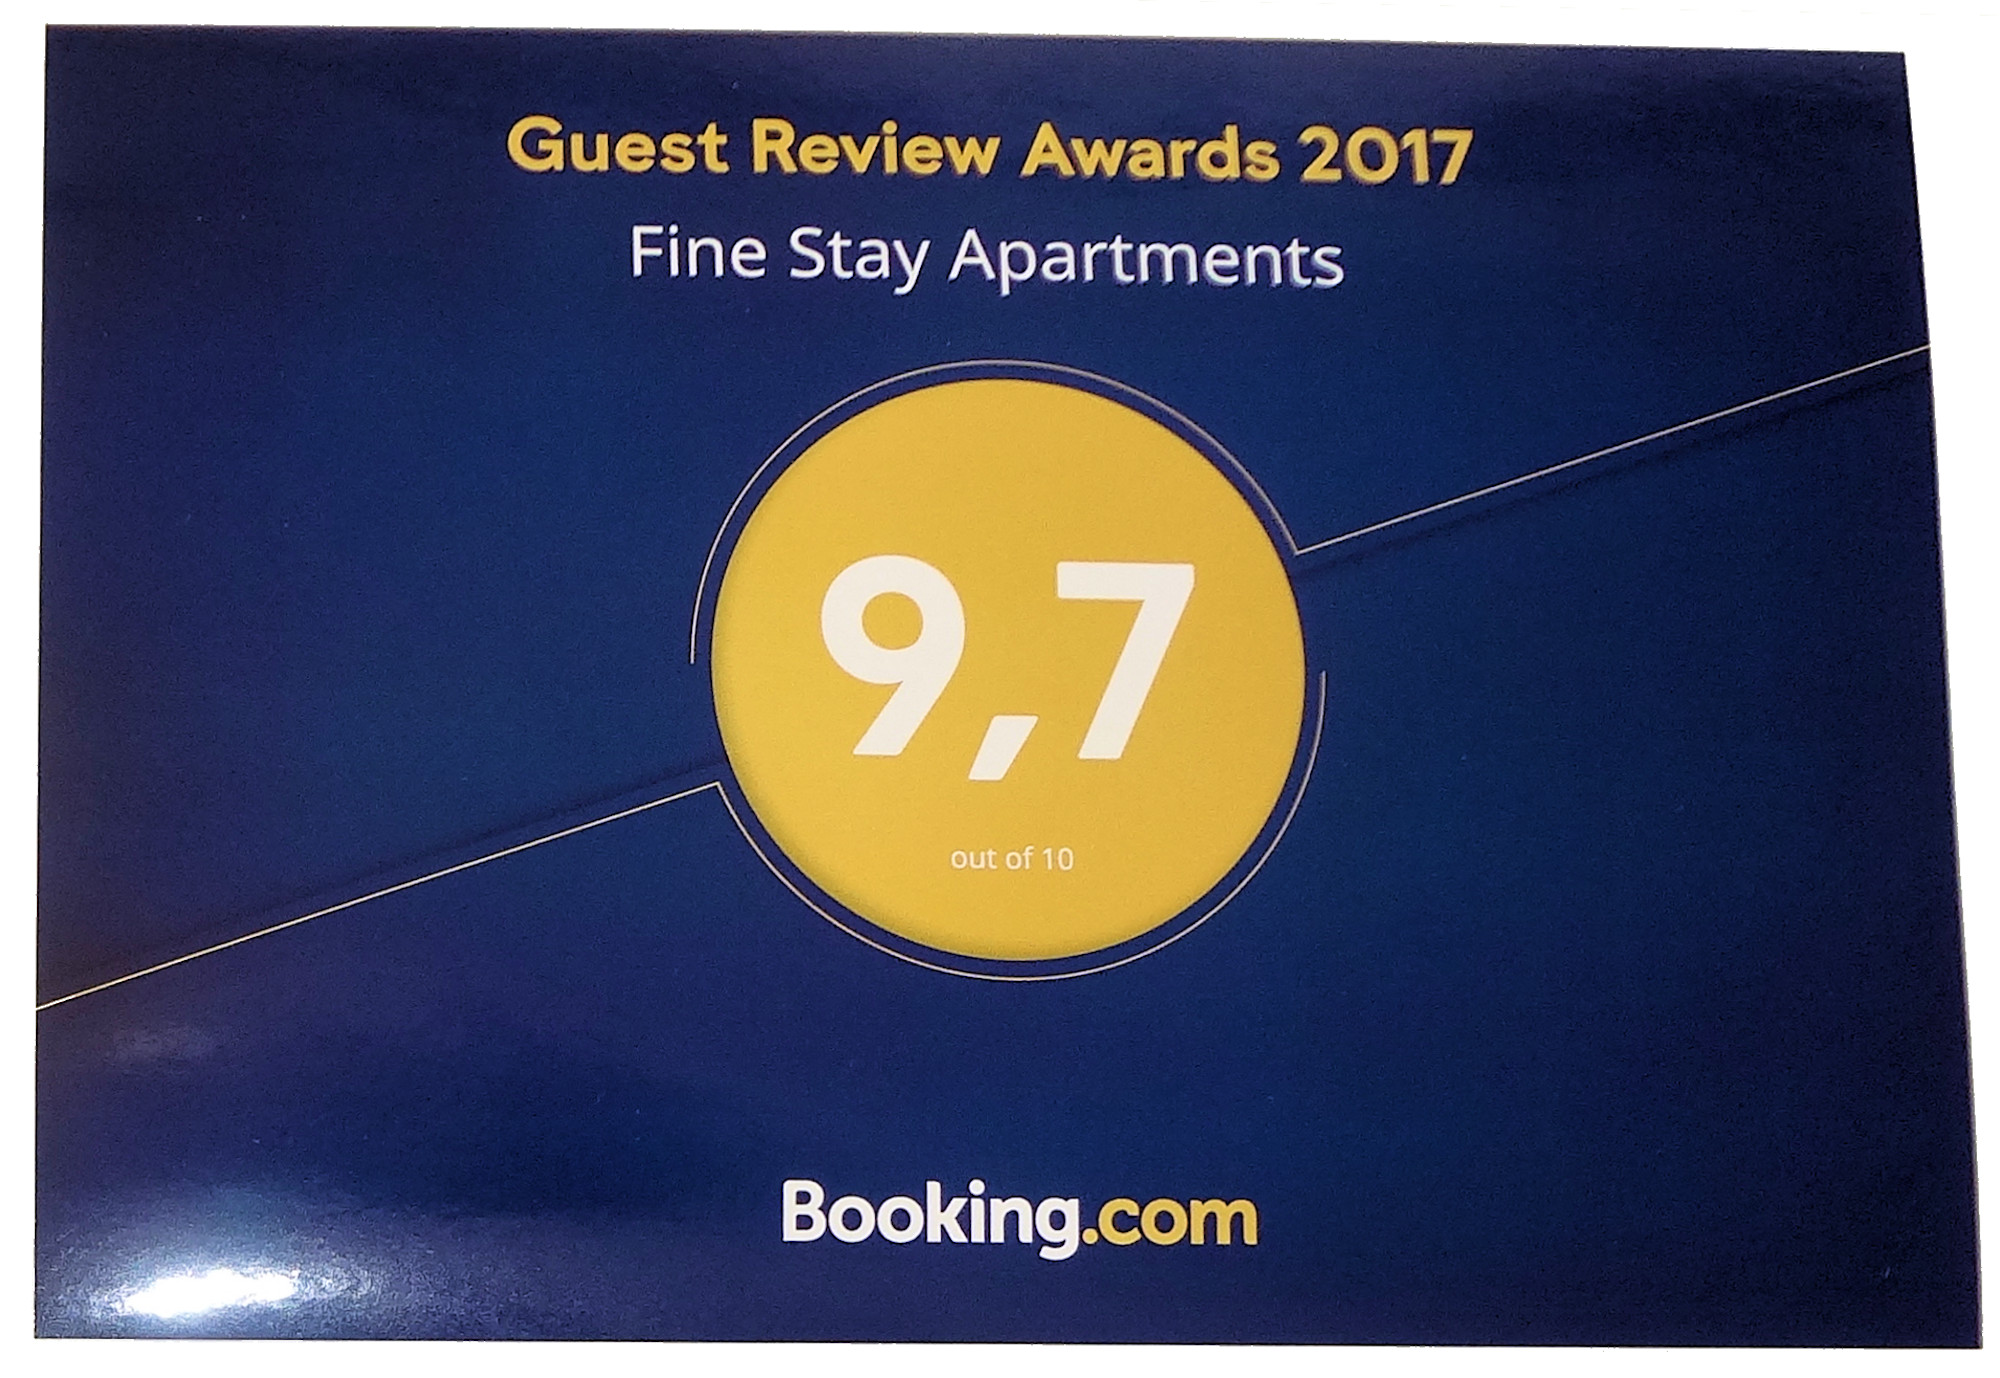 How Big Booking Accommodations